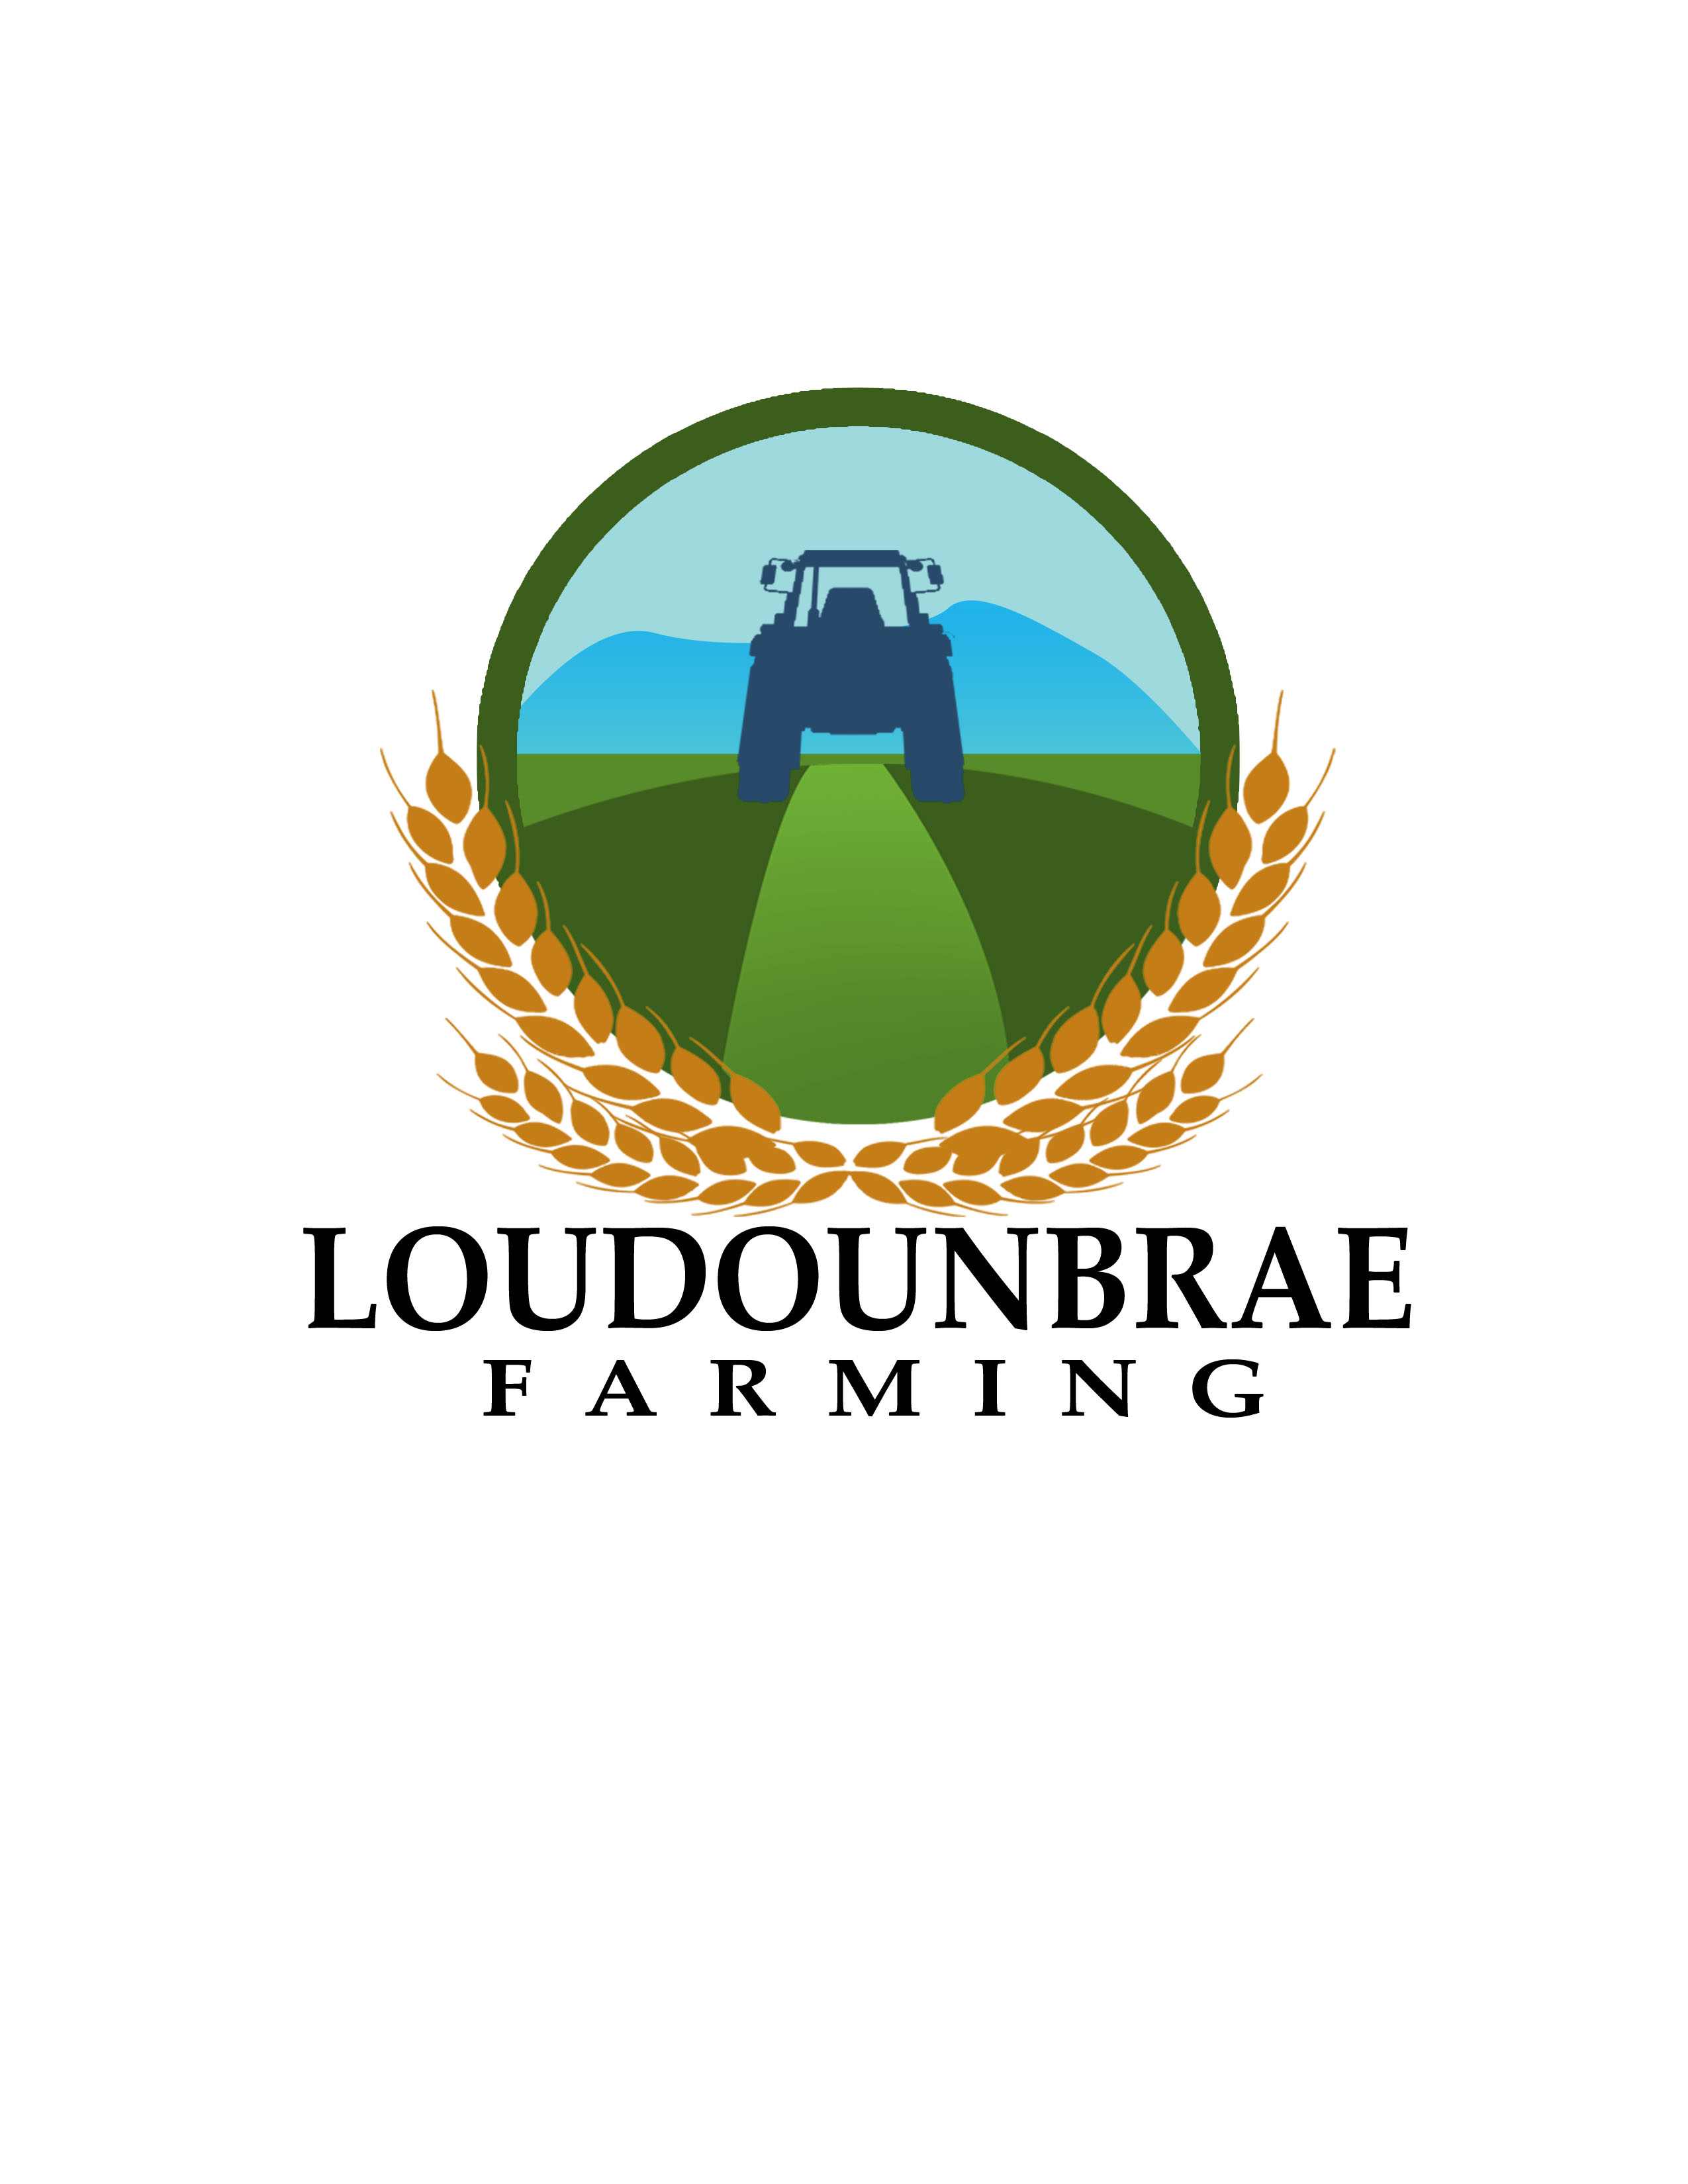 Logo Design by Allan Esclamado - Entry No. 51 in the Logo Design Contest Creative Logo Design for Loudounbrae Farming.